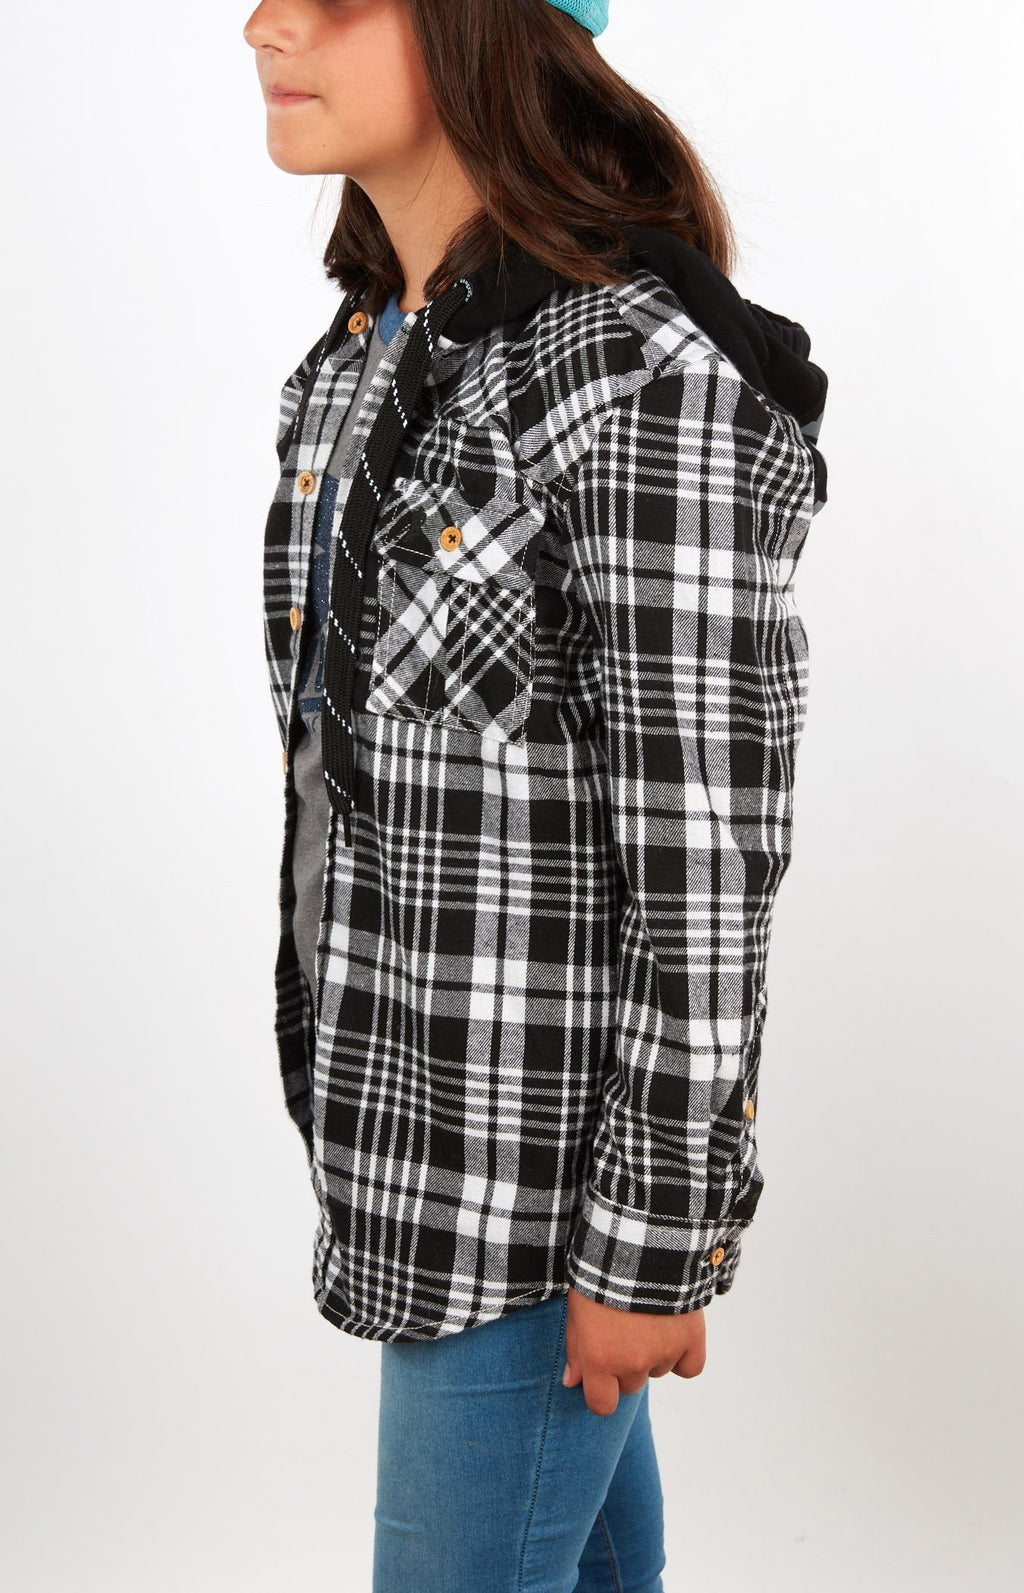 Plaid For The Lad Black/White JR